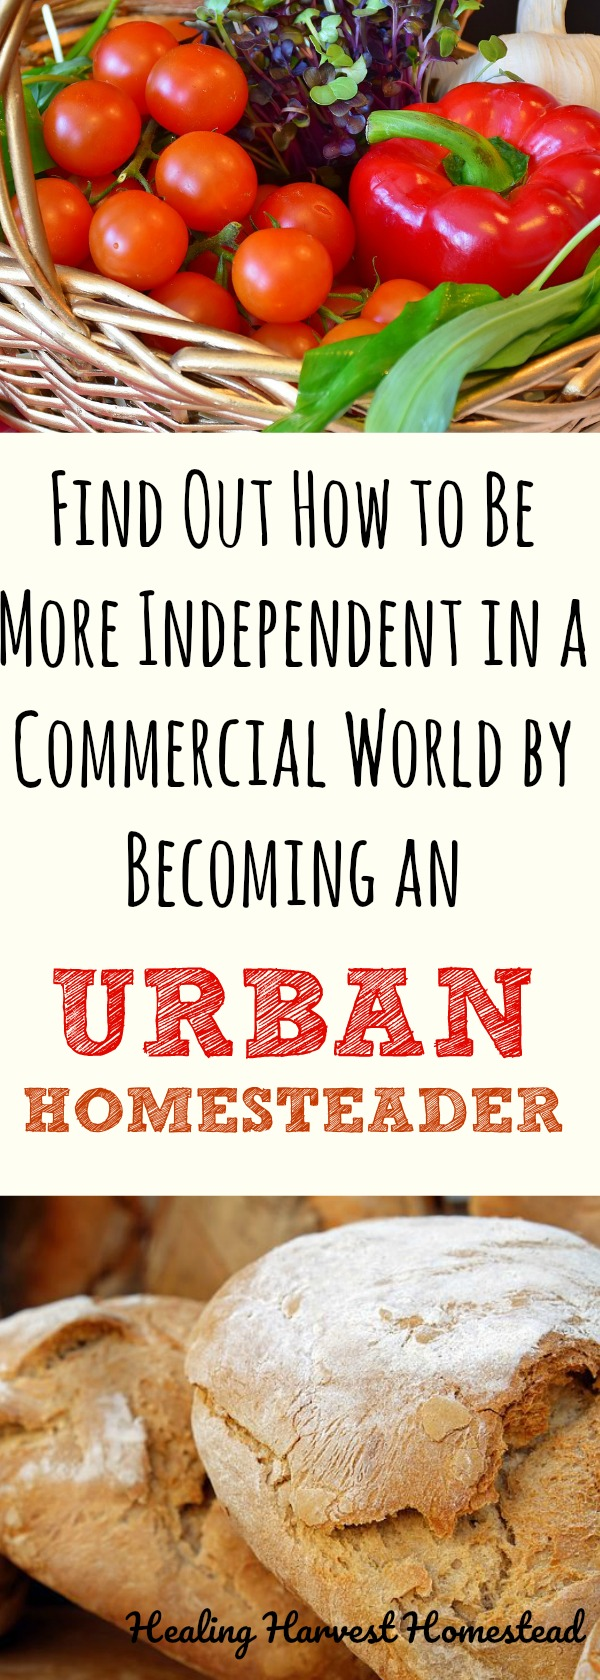 What on earth is Urban Homesteading? Is it even a thing? Find out what urban homesteading is, how to become an urban homesteader, and how to live a more self-reliant life no matter where you live. Can you be self-sufficient in the big city? Yes! Find out how to become more independent and inter-dependent! #urban #homesteader #howtohomestead #howtostart #homesteading #healingharvesthomestead